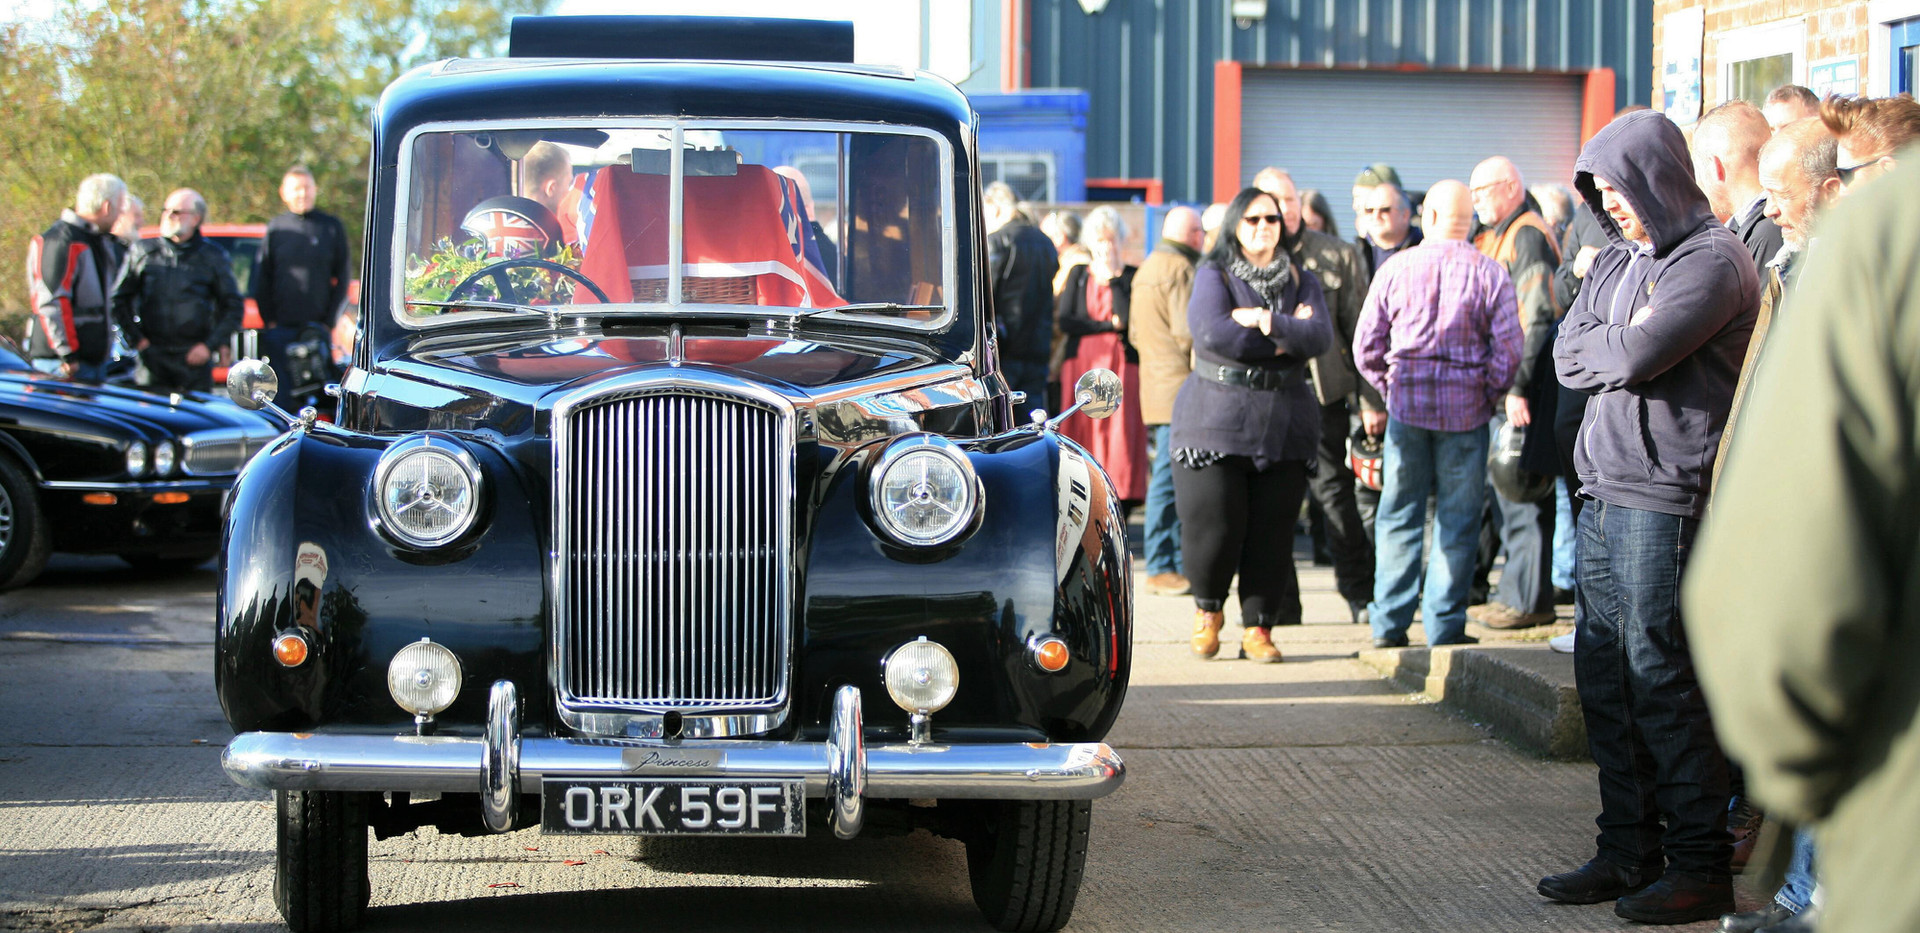 Funeral of the late Dave Peever - Arriving at Engine Machini